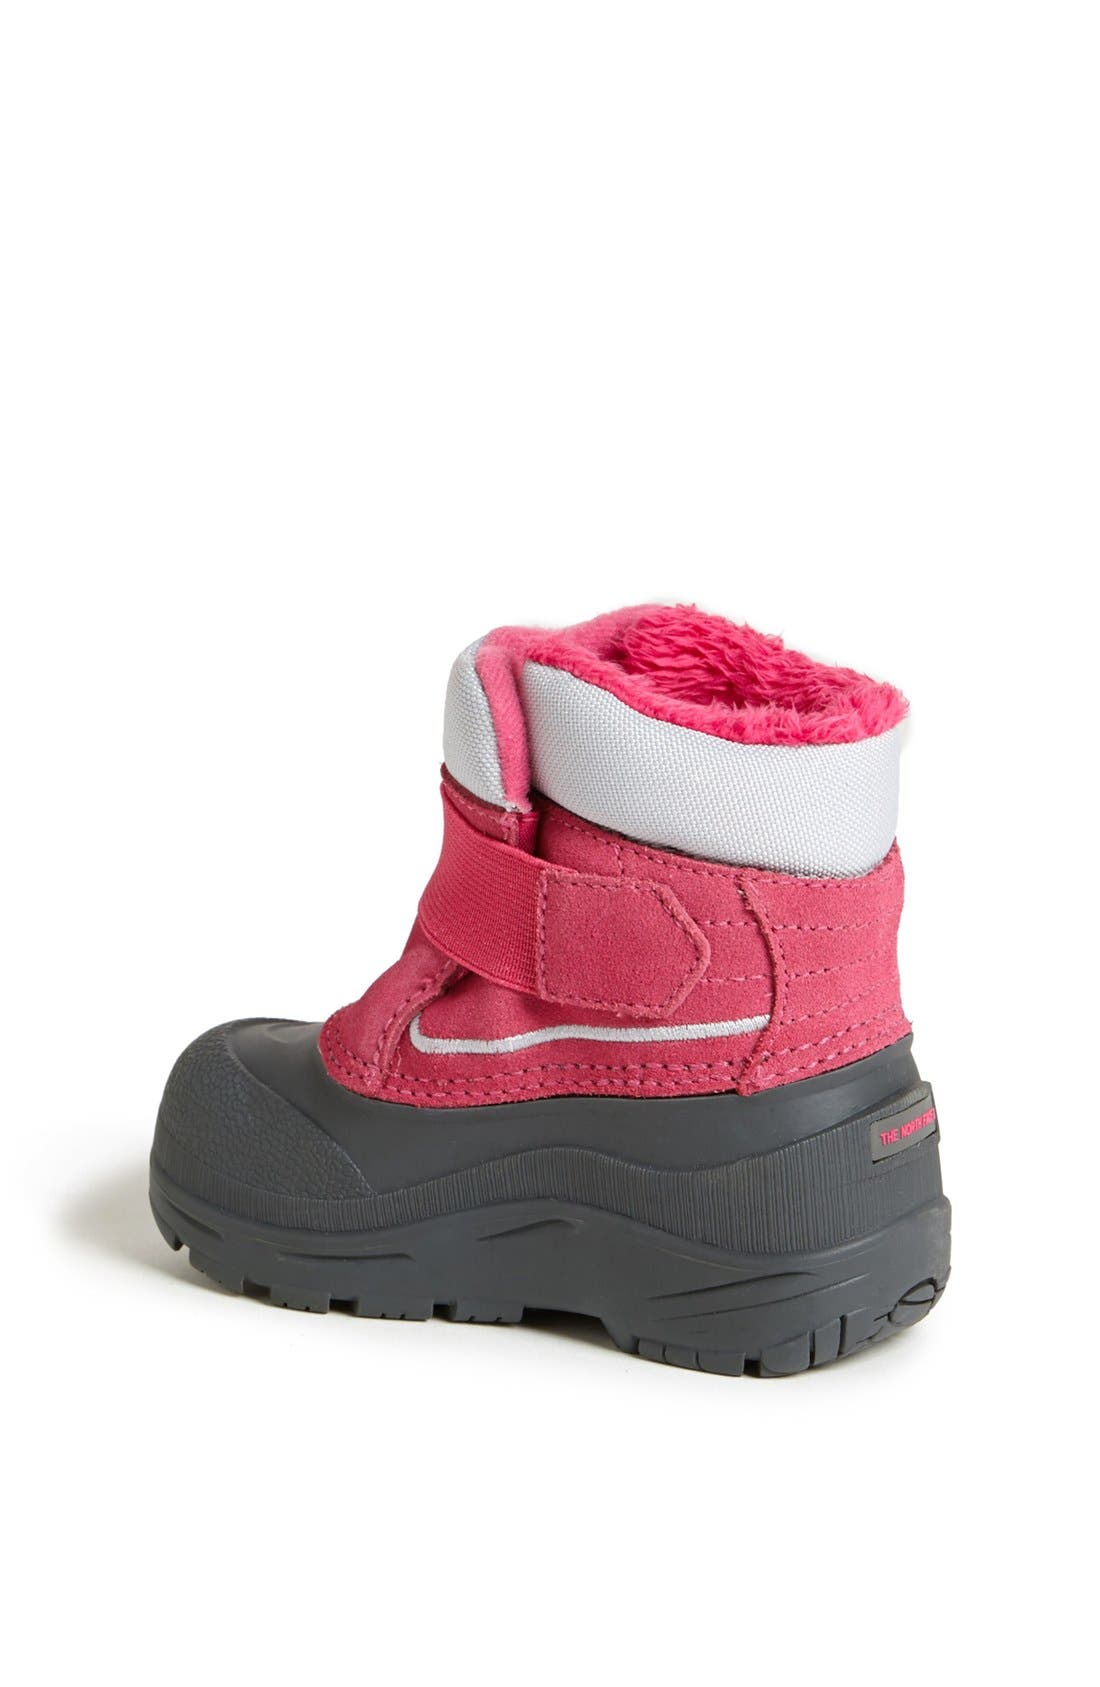 Alternate Image 2  - The North Face 'Powder Hound' Waterproof Snow Boot (Walker & Toddler)